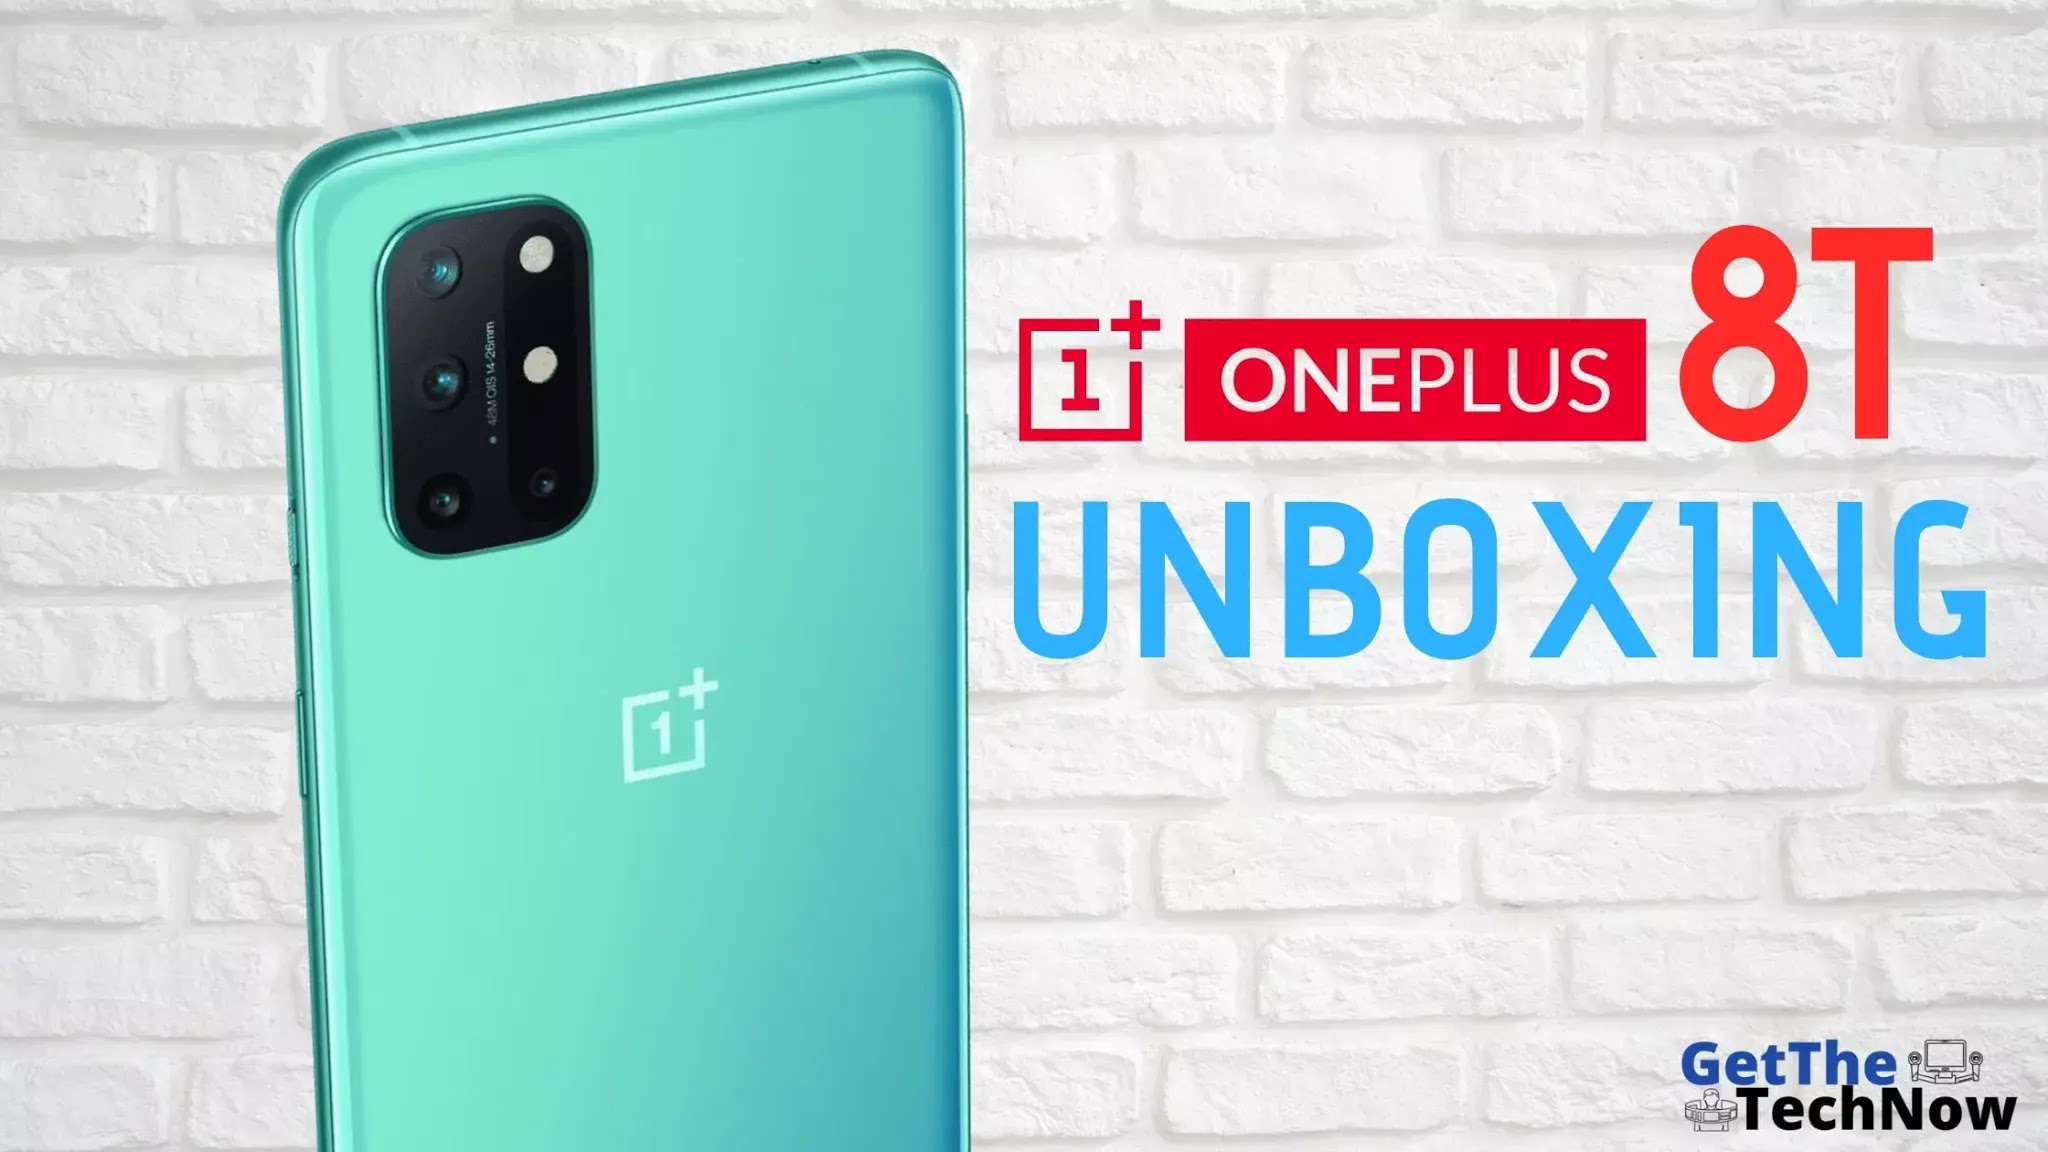 unboxing-oneplus8-t